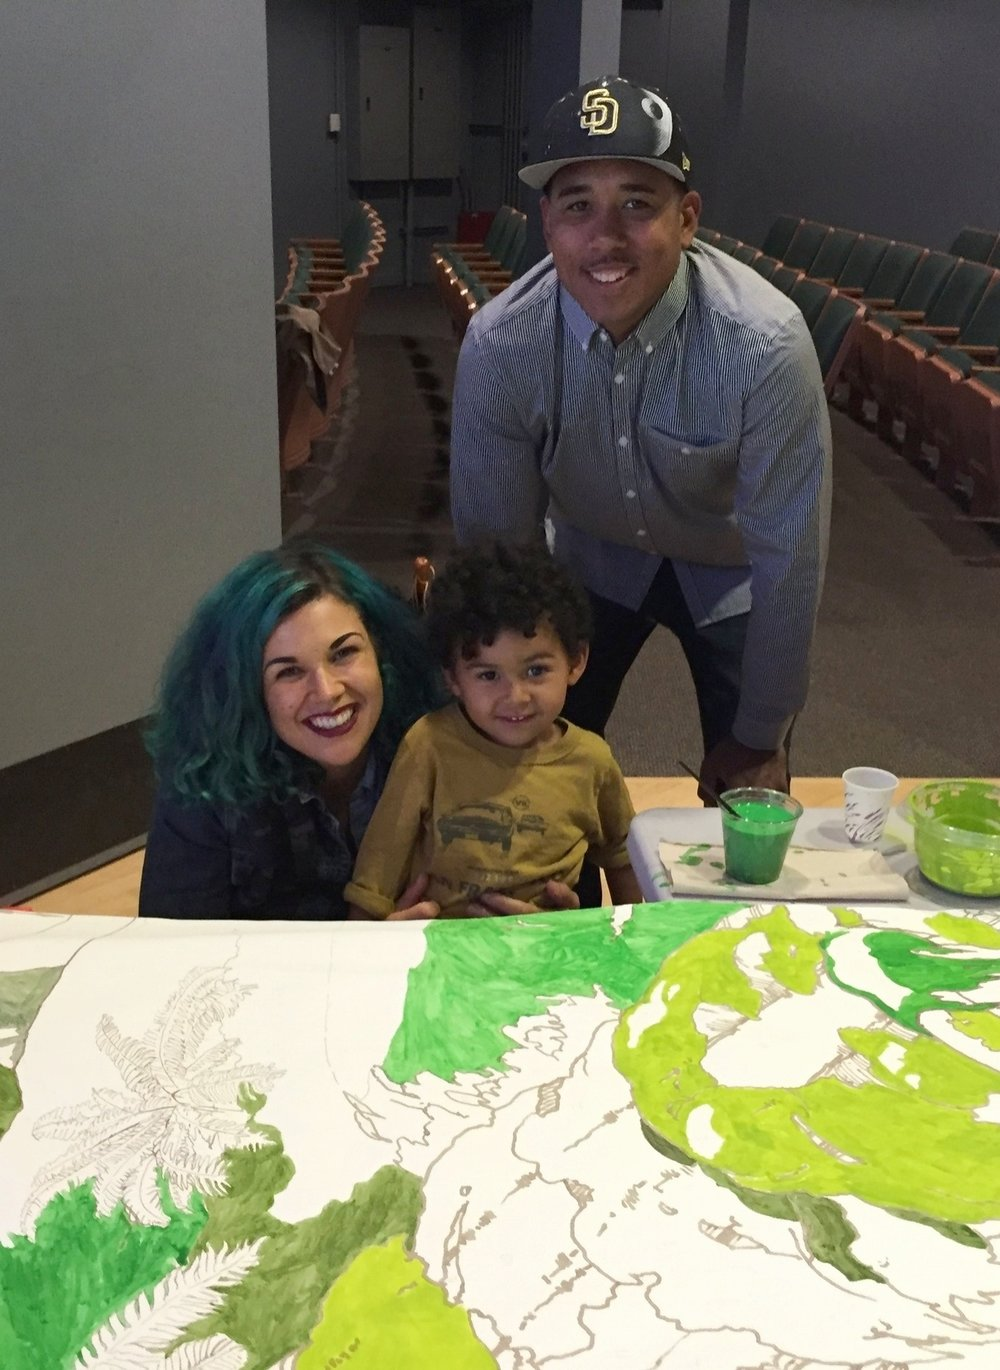 This little guy was proud of the green 'clouds' he painted.